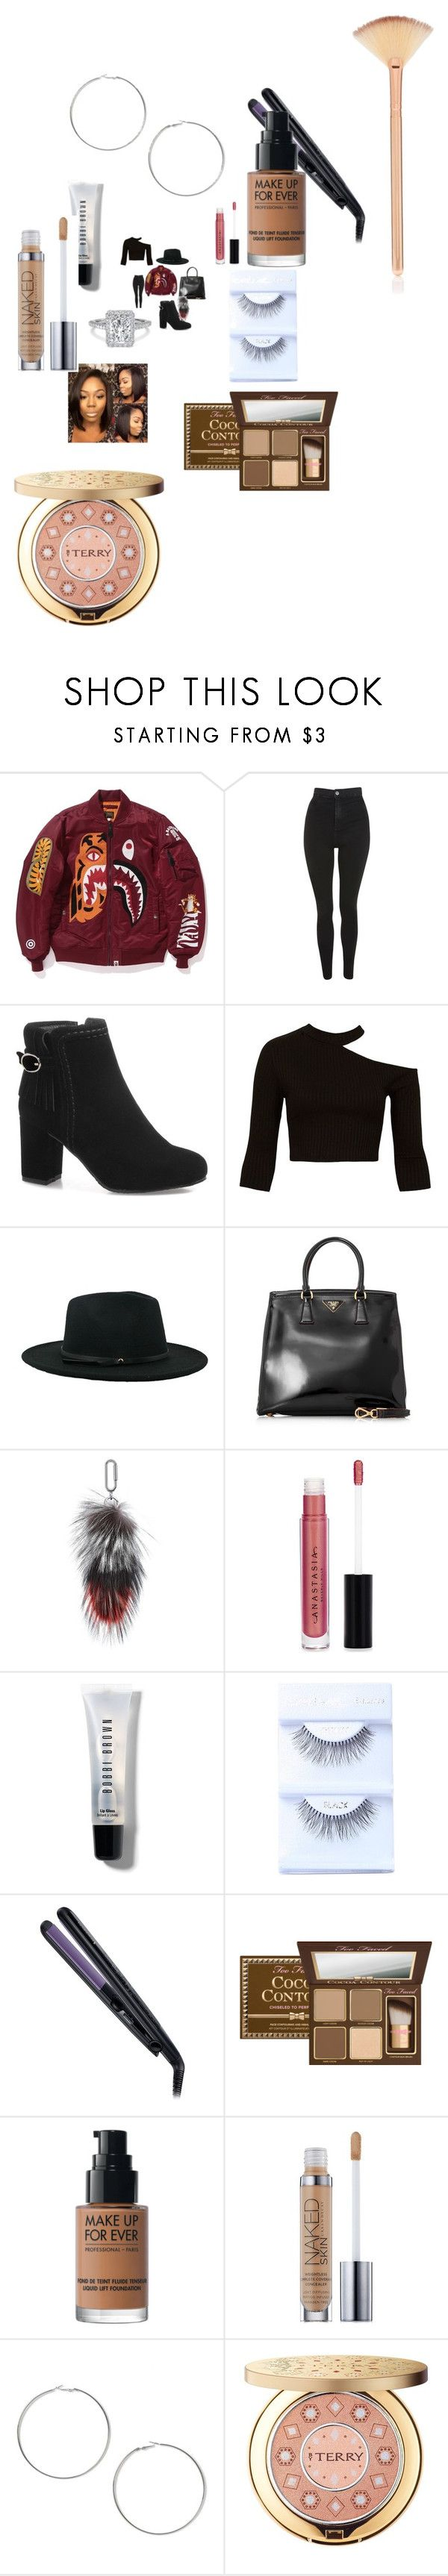 """""""Untitled #5014"""" by fashionicon67 ❤ liked on Polyvore featuring Topshop, Sans Souci, Prada, Amanda Wakeley, Anastasia Beverly Hills, Bobbi Brown Cosmetics, Remington, MAKE UP FOR EVER, Urban Decay and Miss Selfridge"""